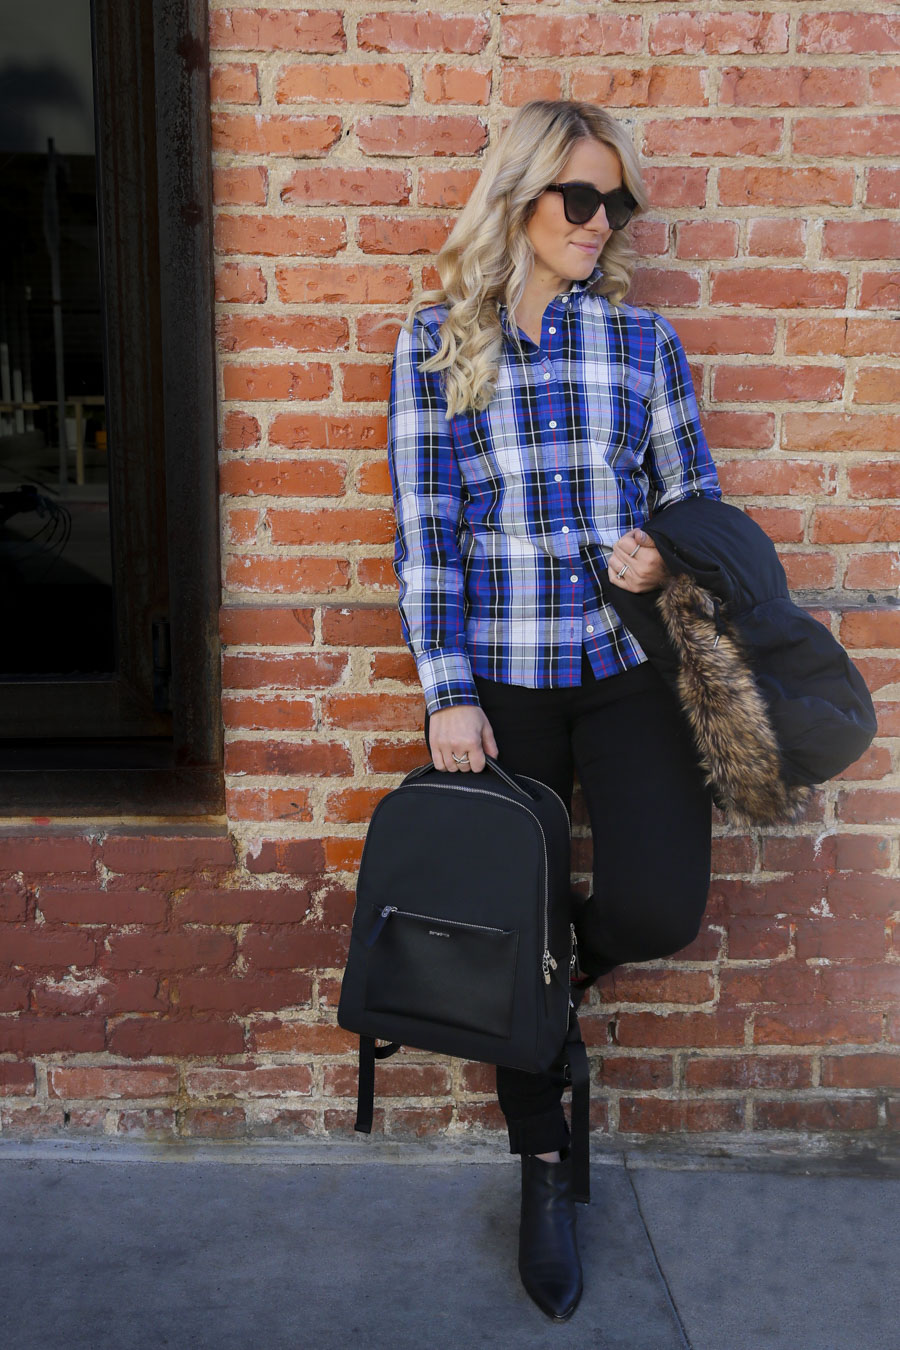 Backpack Outfits for Stylish Women - Plaid Shirt + Vest